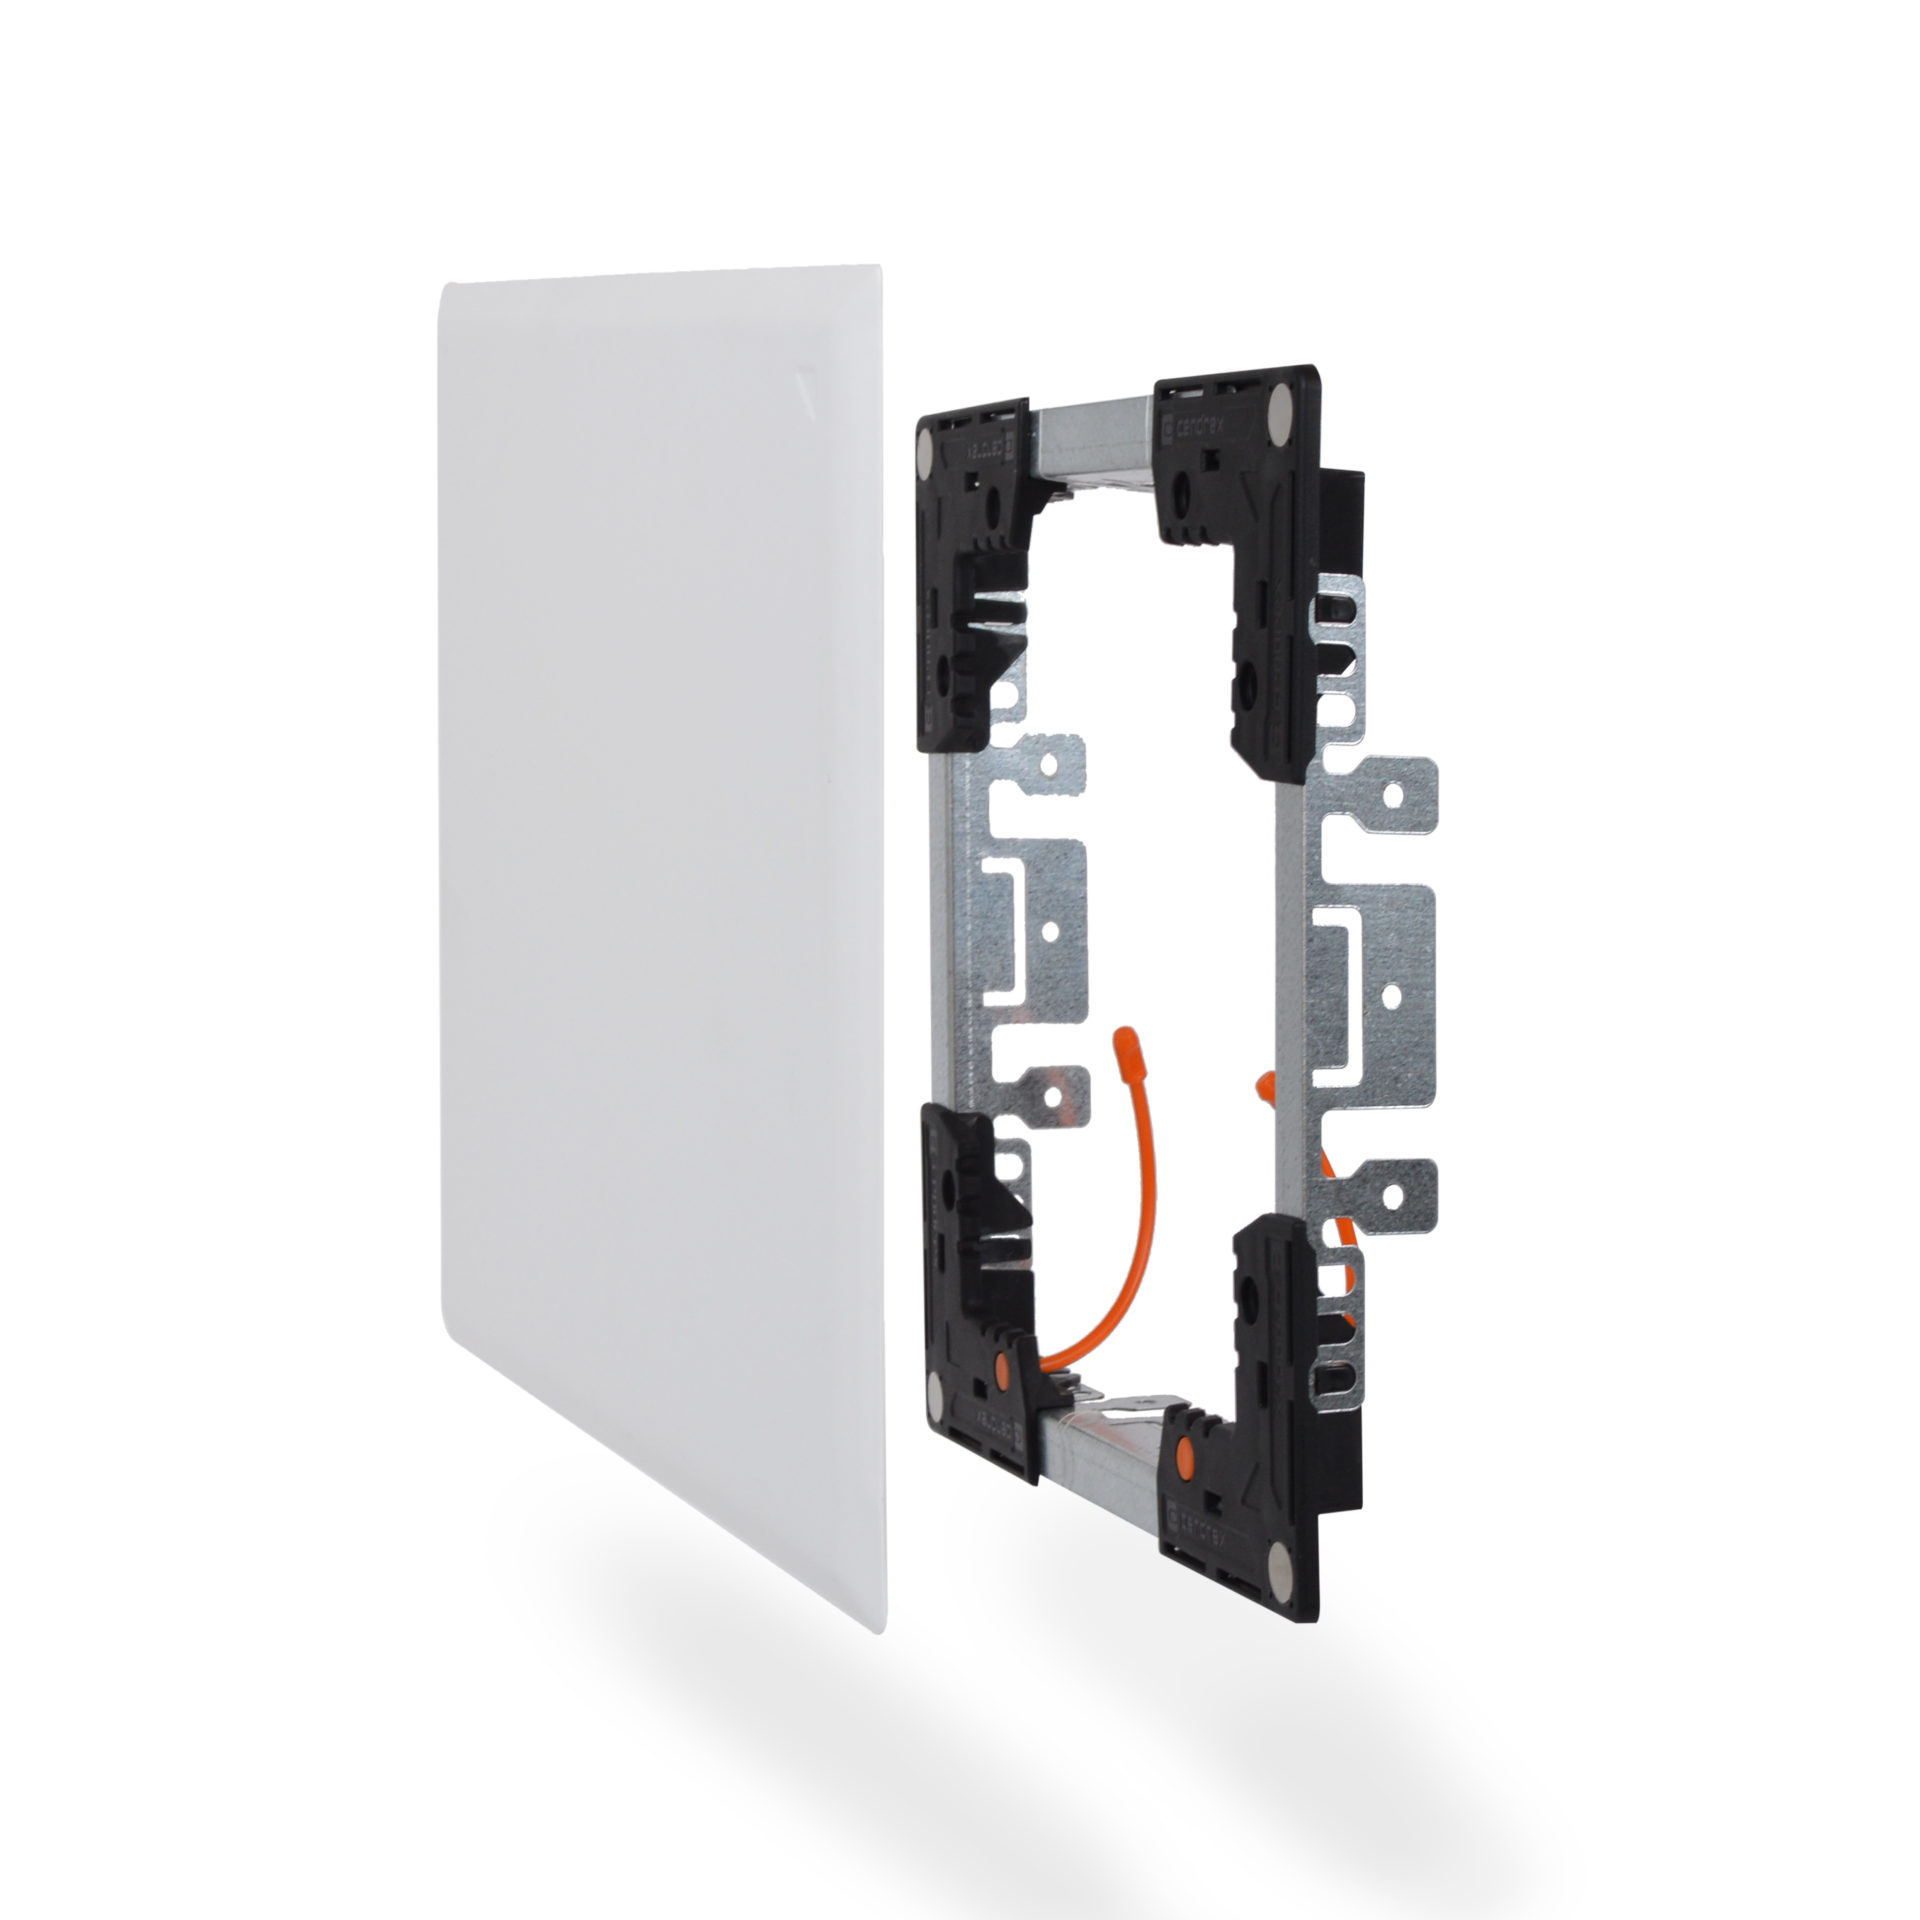 Flush Universal FlexiSnap Access Door with Adjustable Frame and Magnetic Closing, concealed magnets, security cables